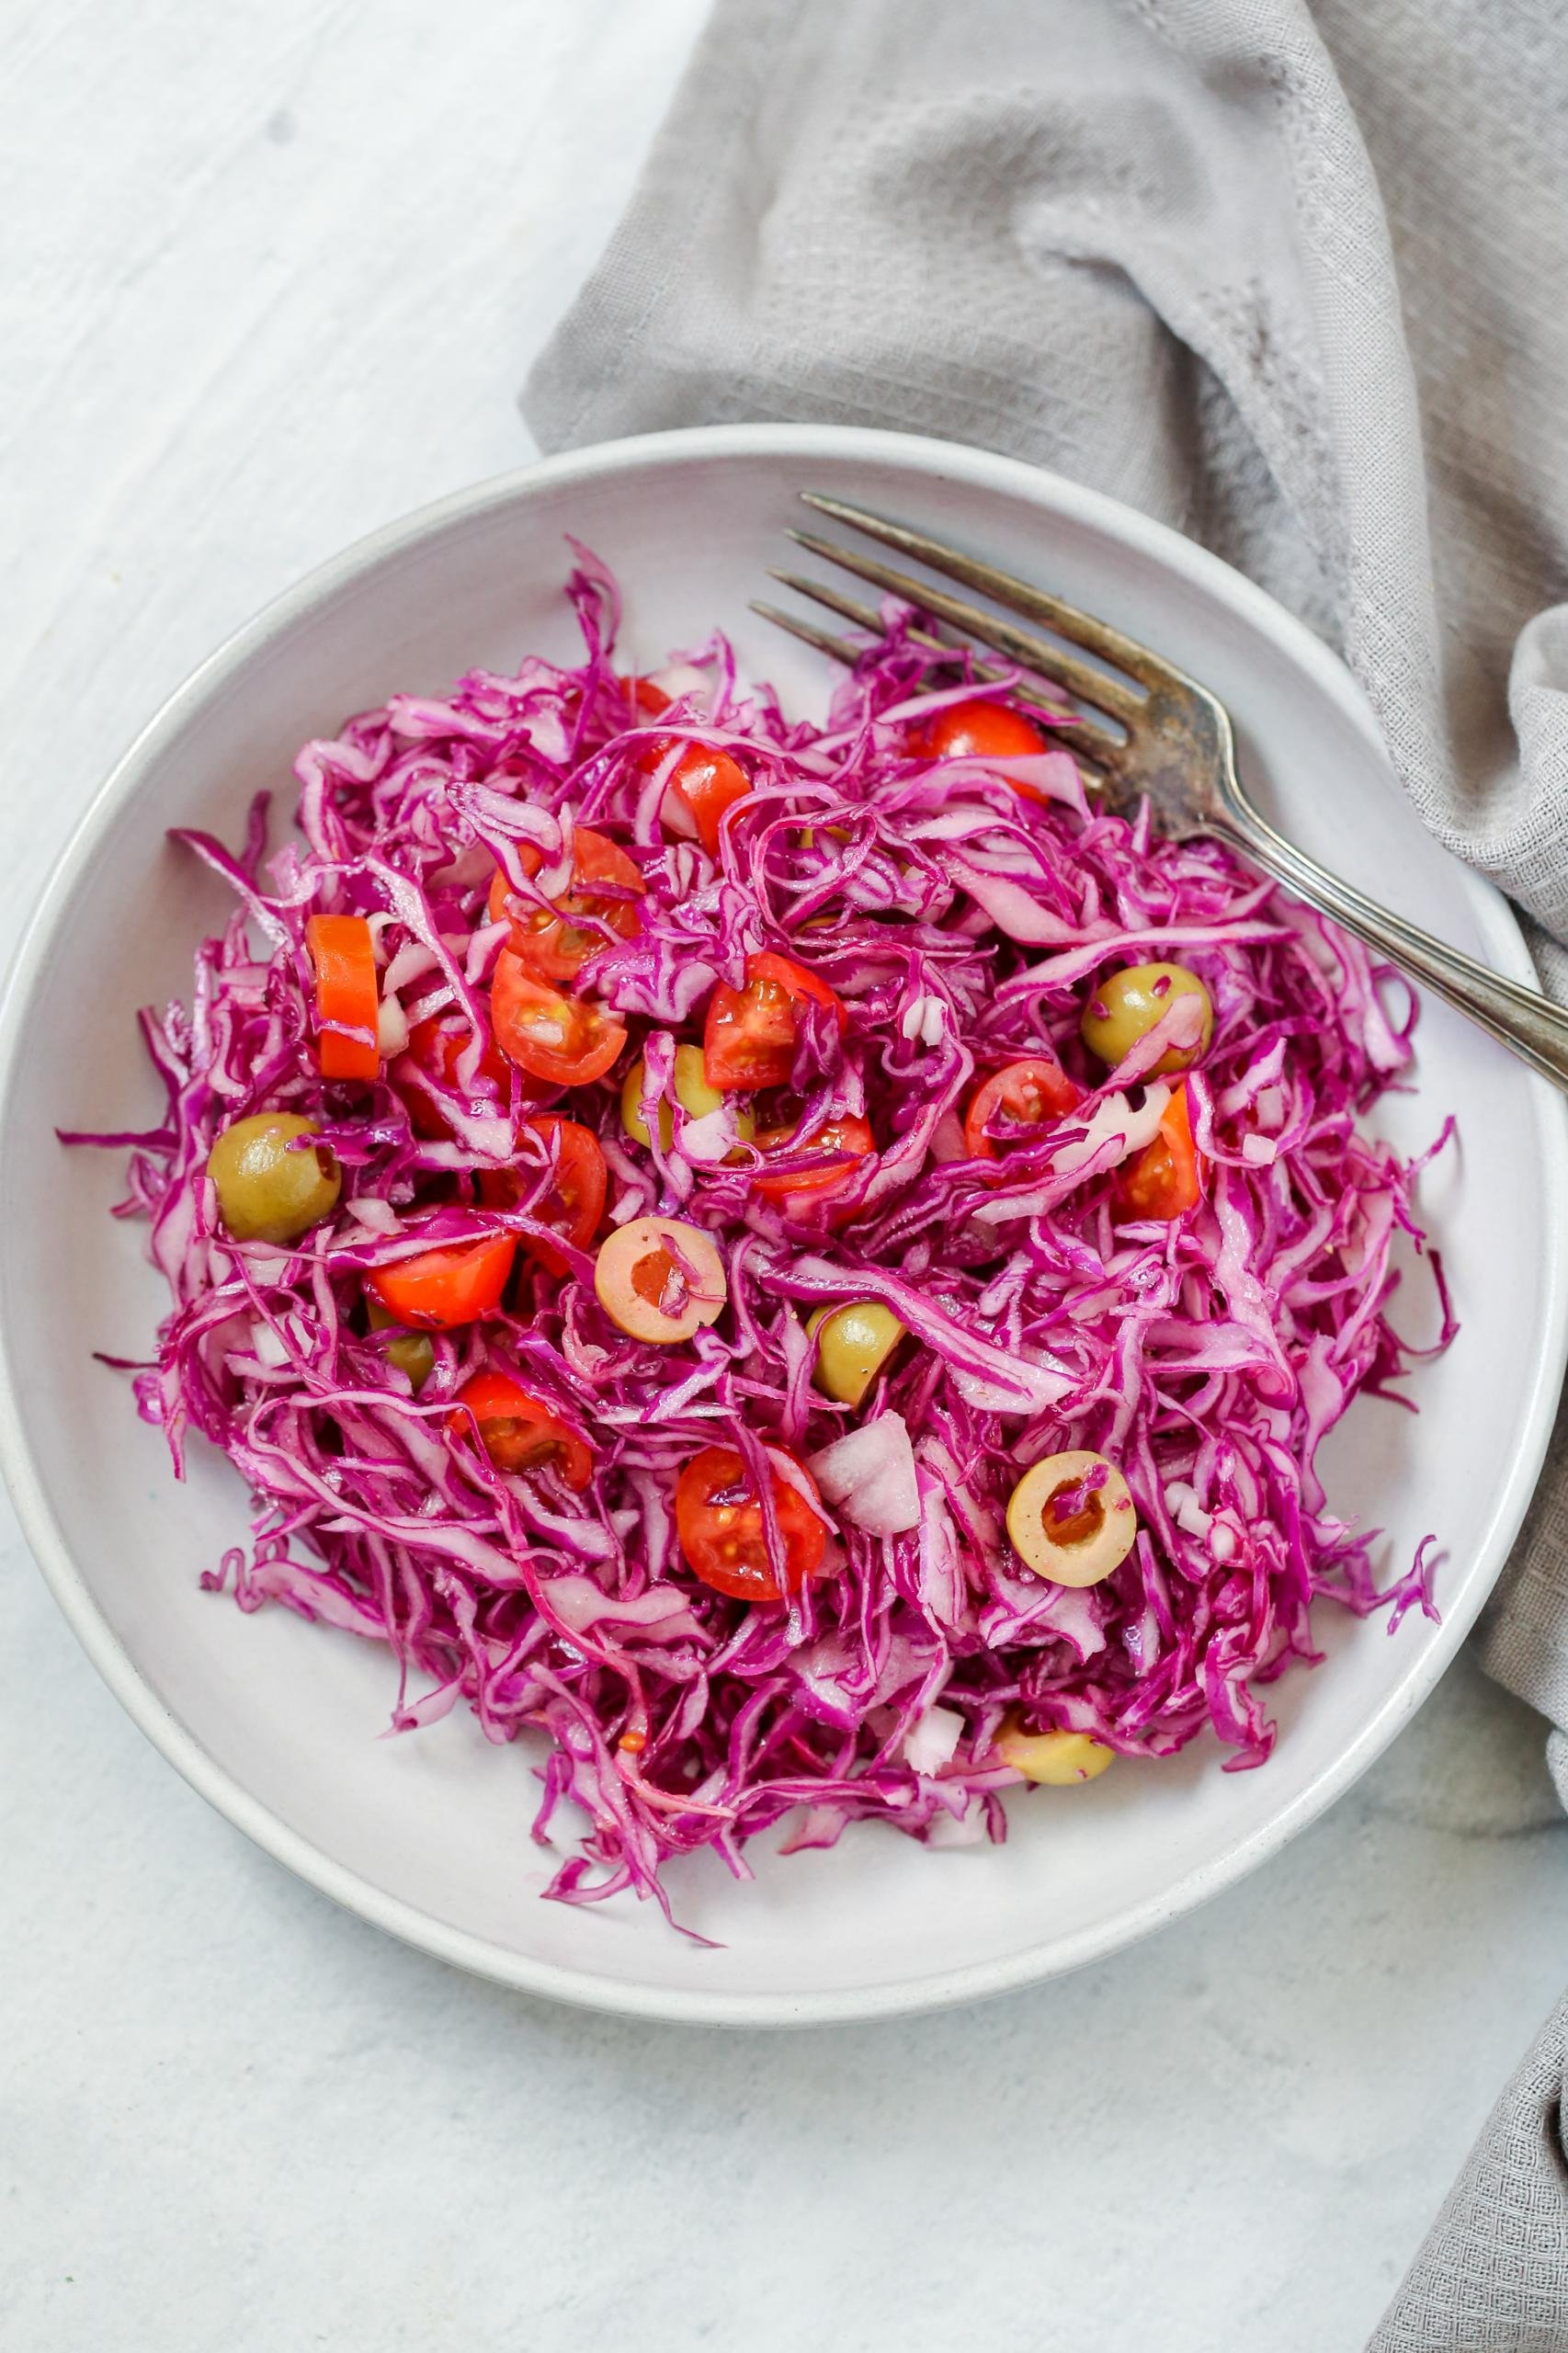 Purple cabbage salad in a bowl